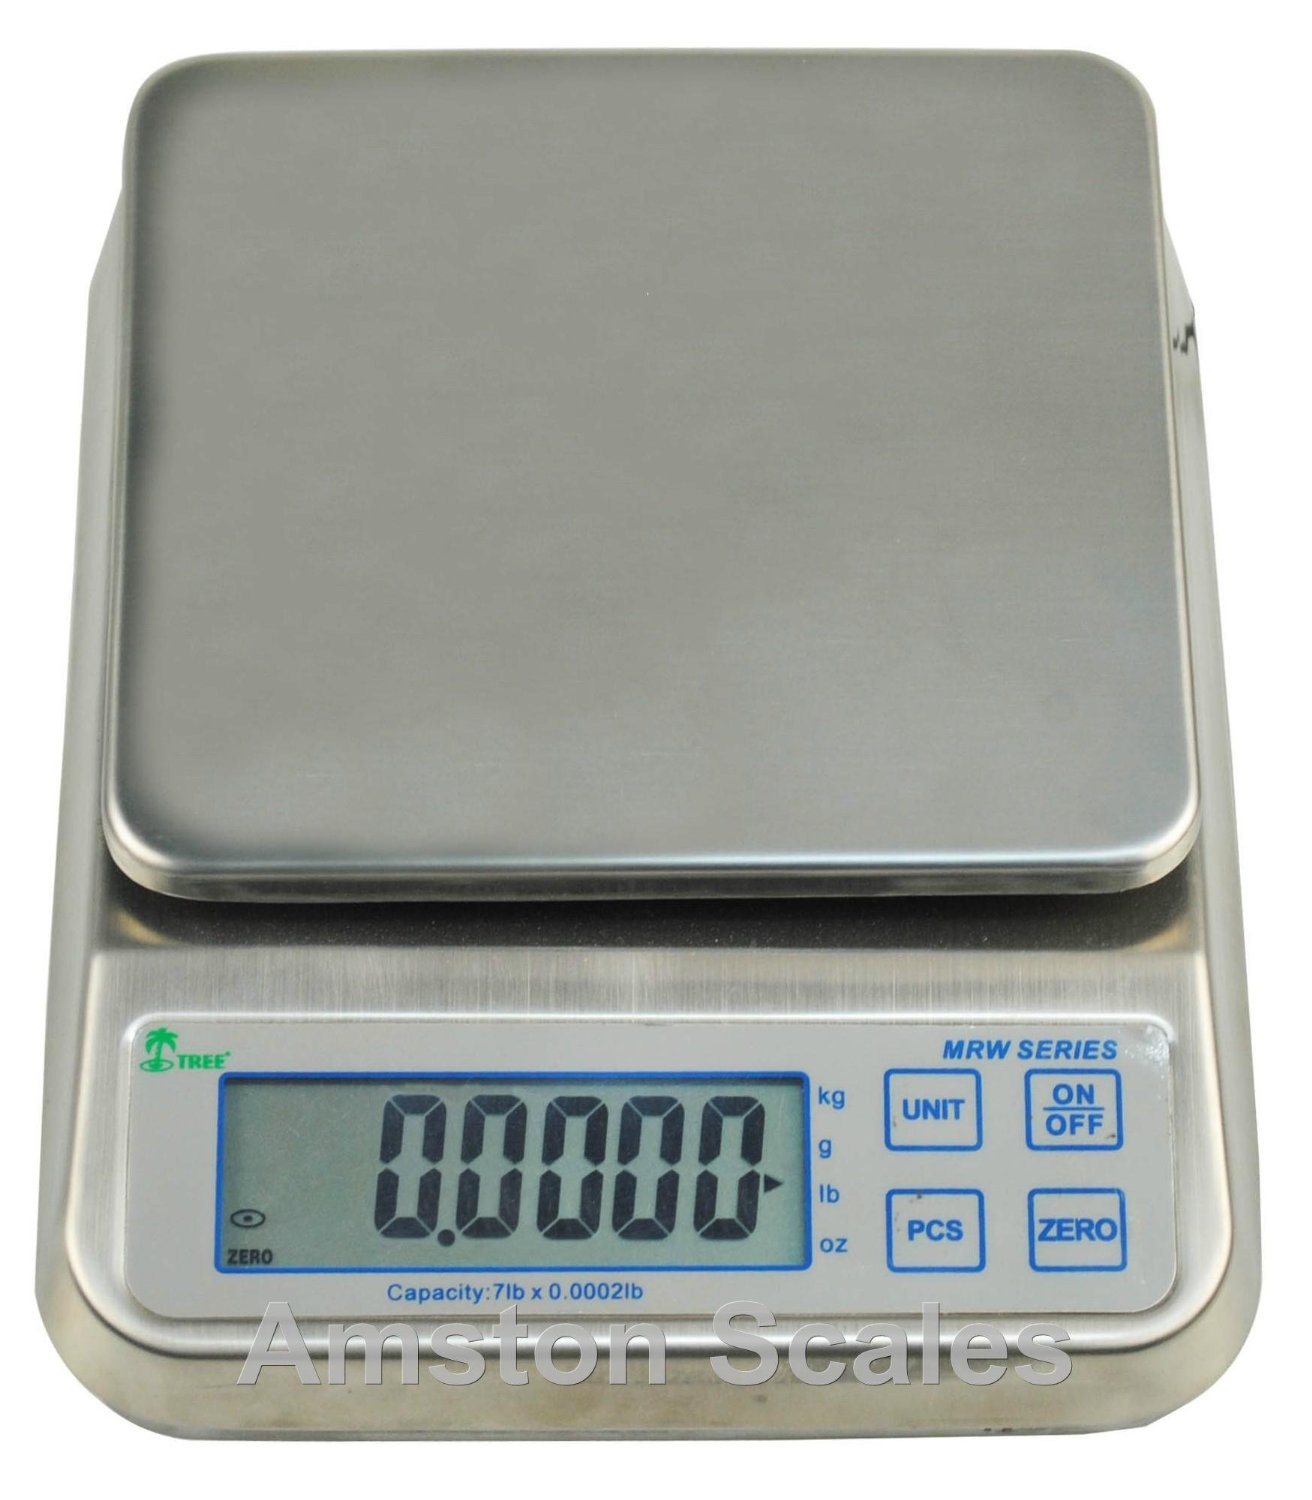 food scale71fDocn-uHL__SL1500_